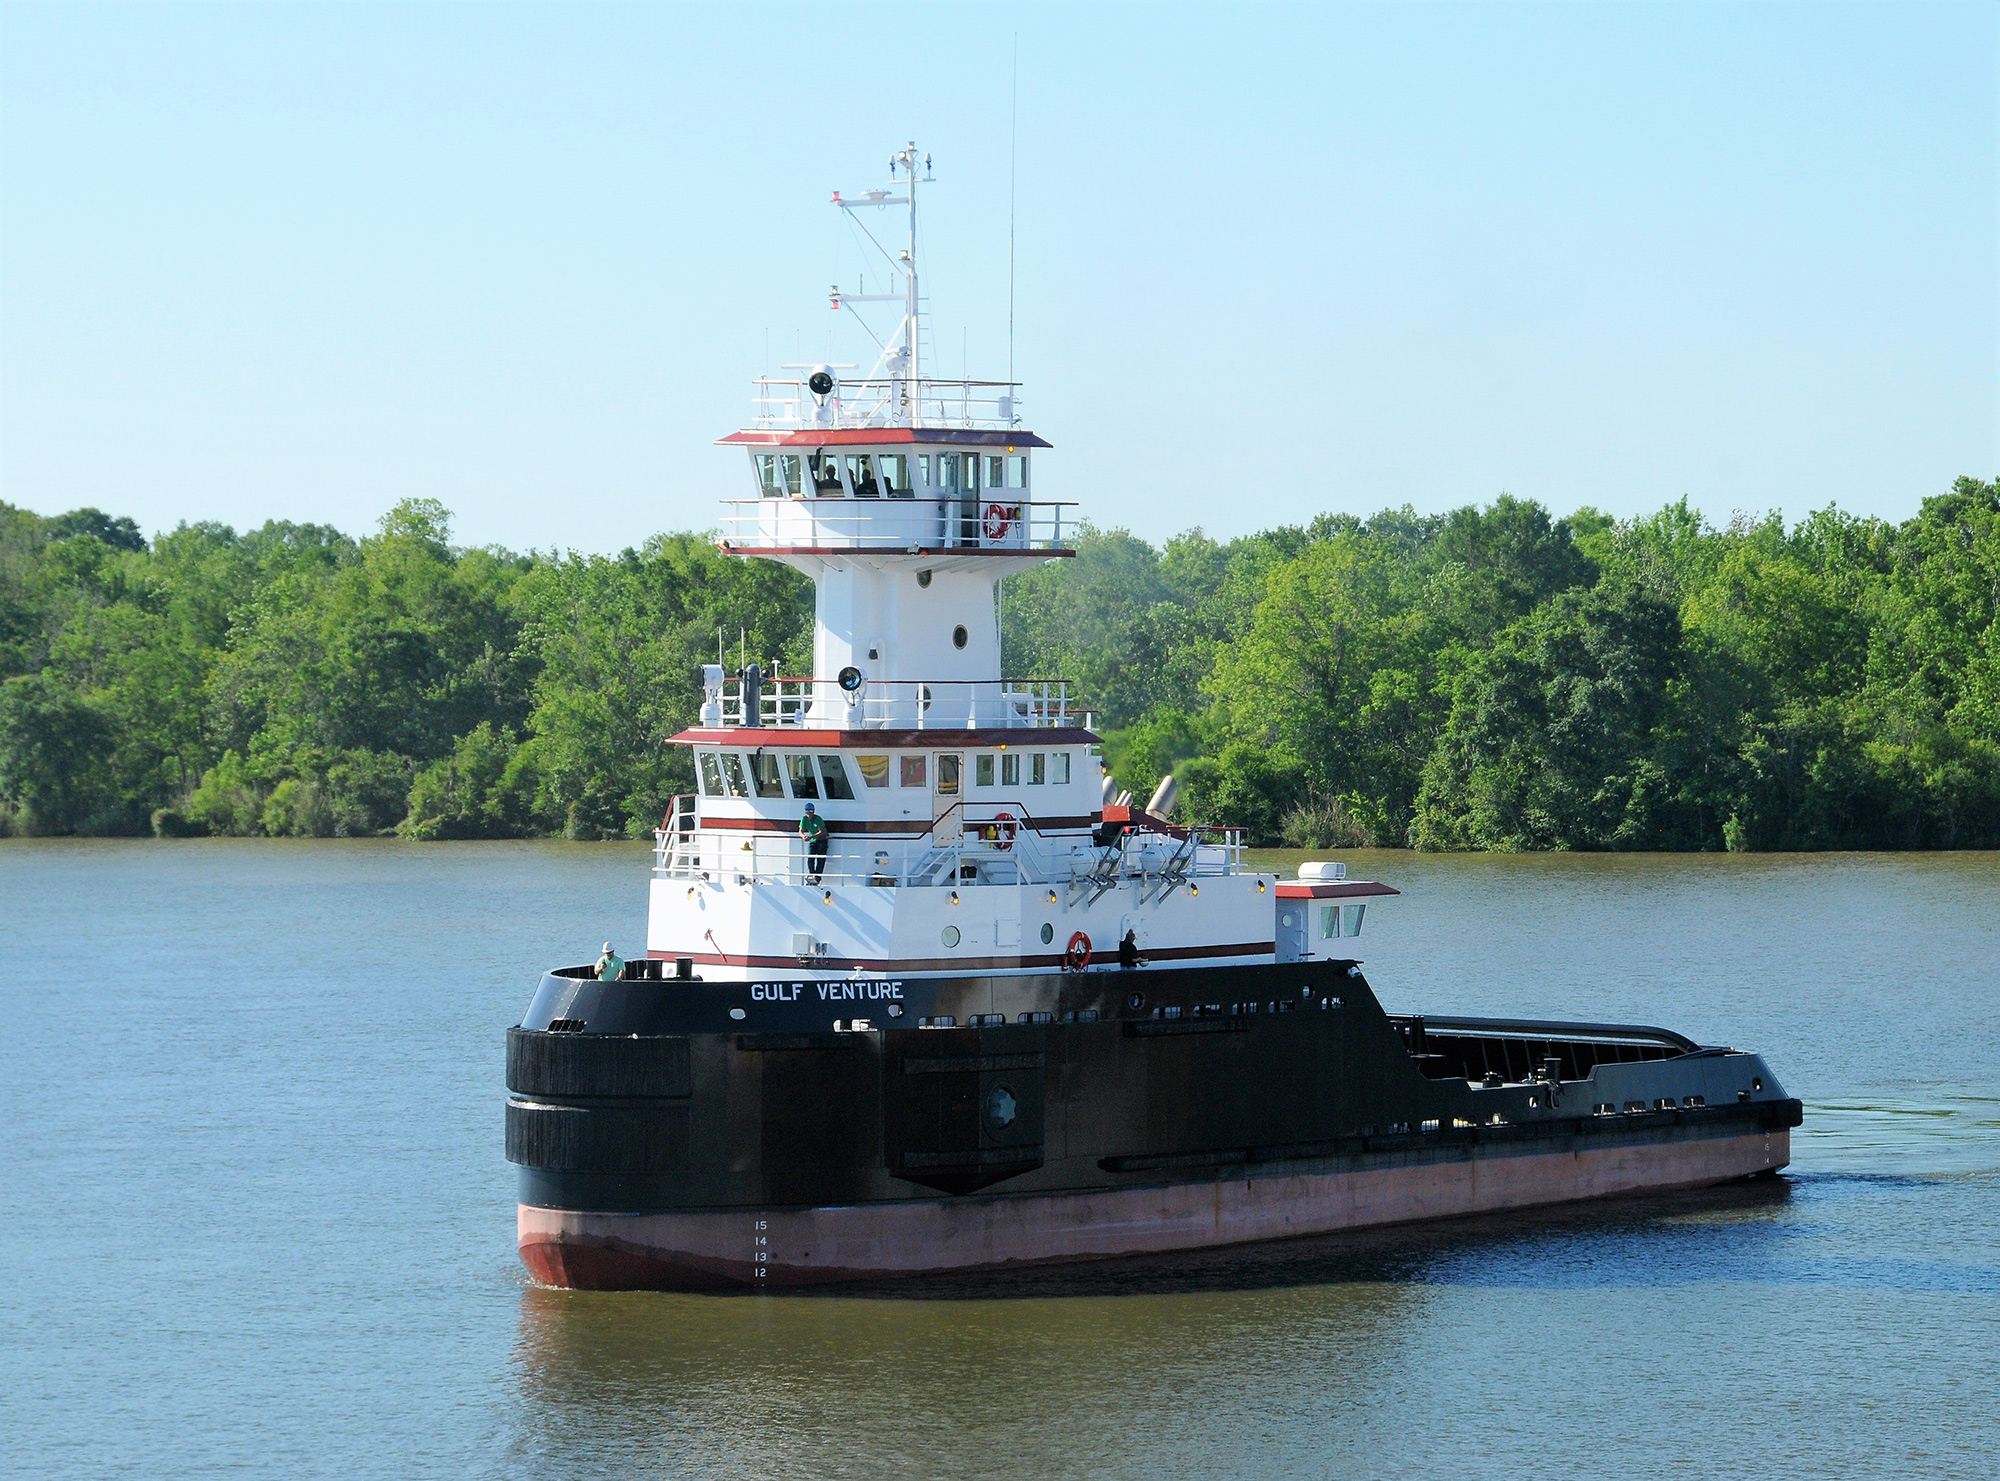 Commercial tugboat - vessel designs